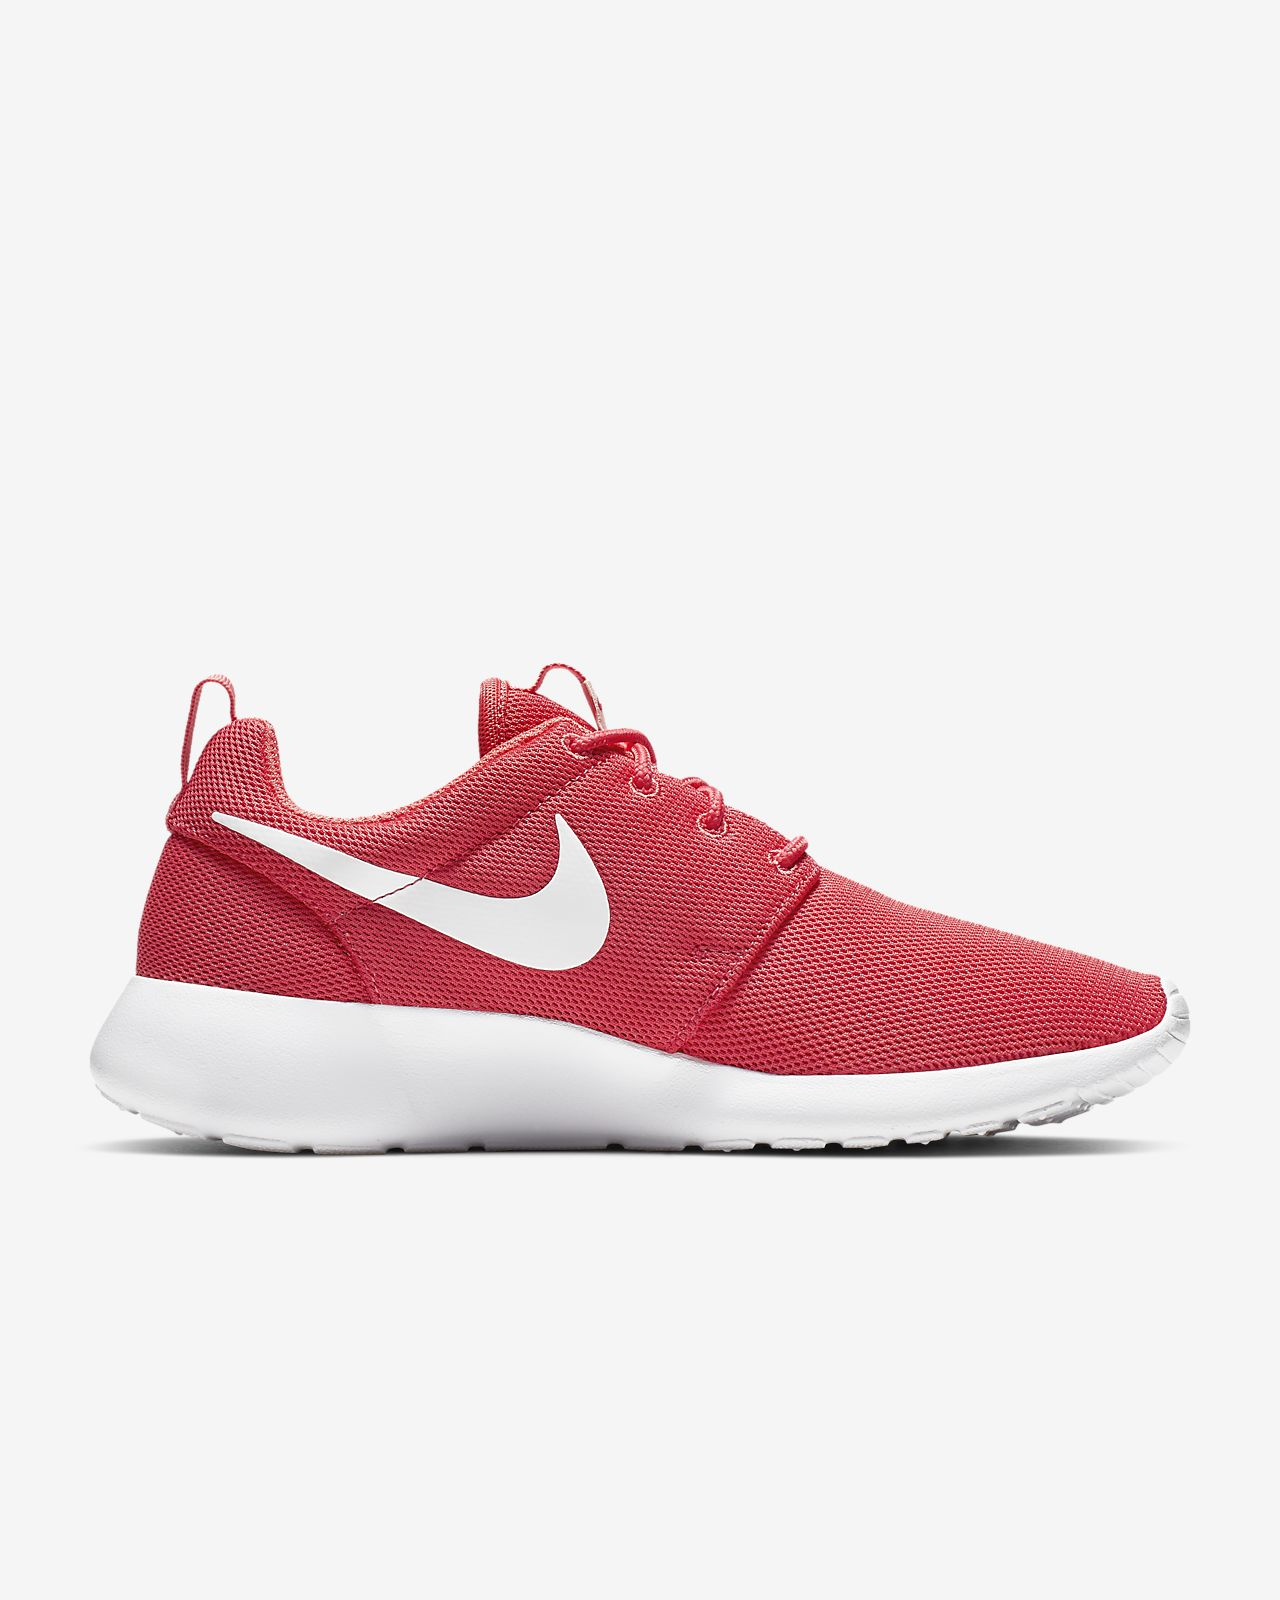 premium selection 57877 03621 ... Nike Roshe One Women s Shoe